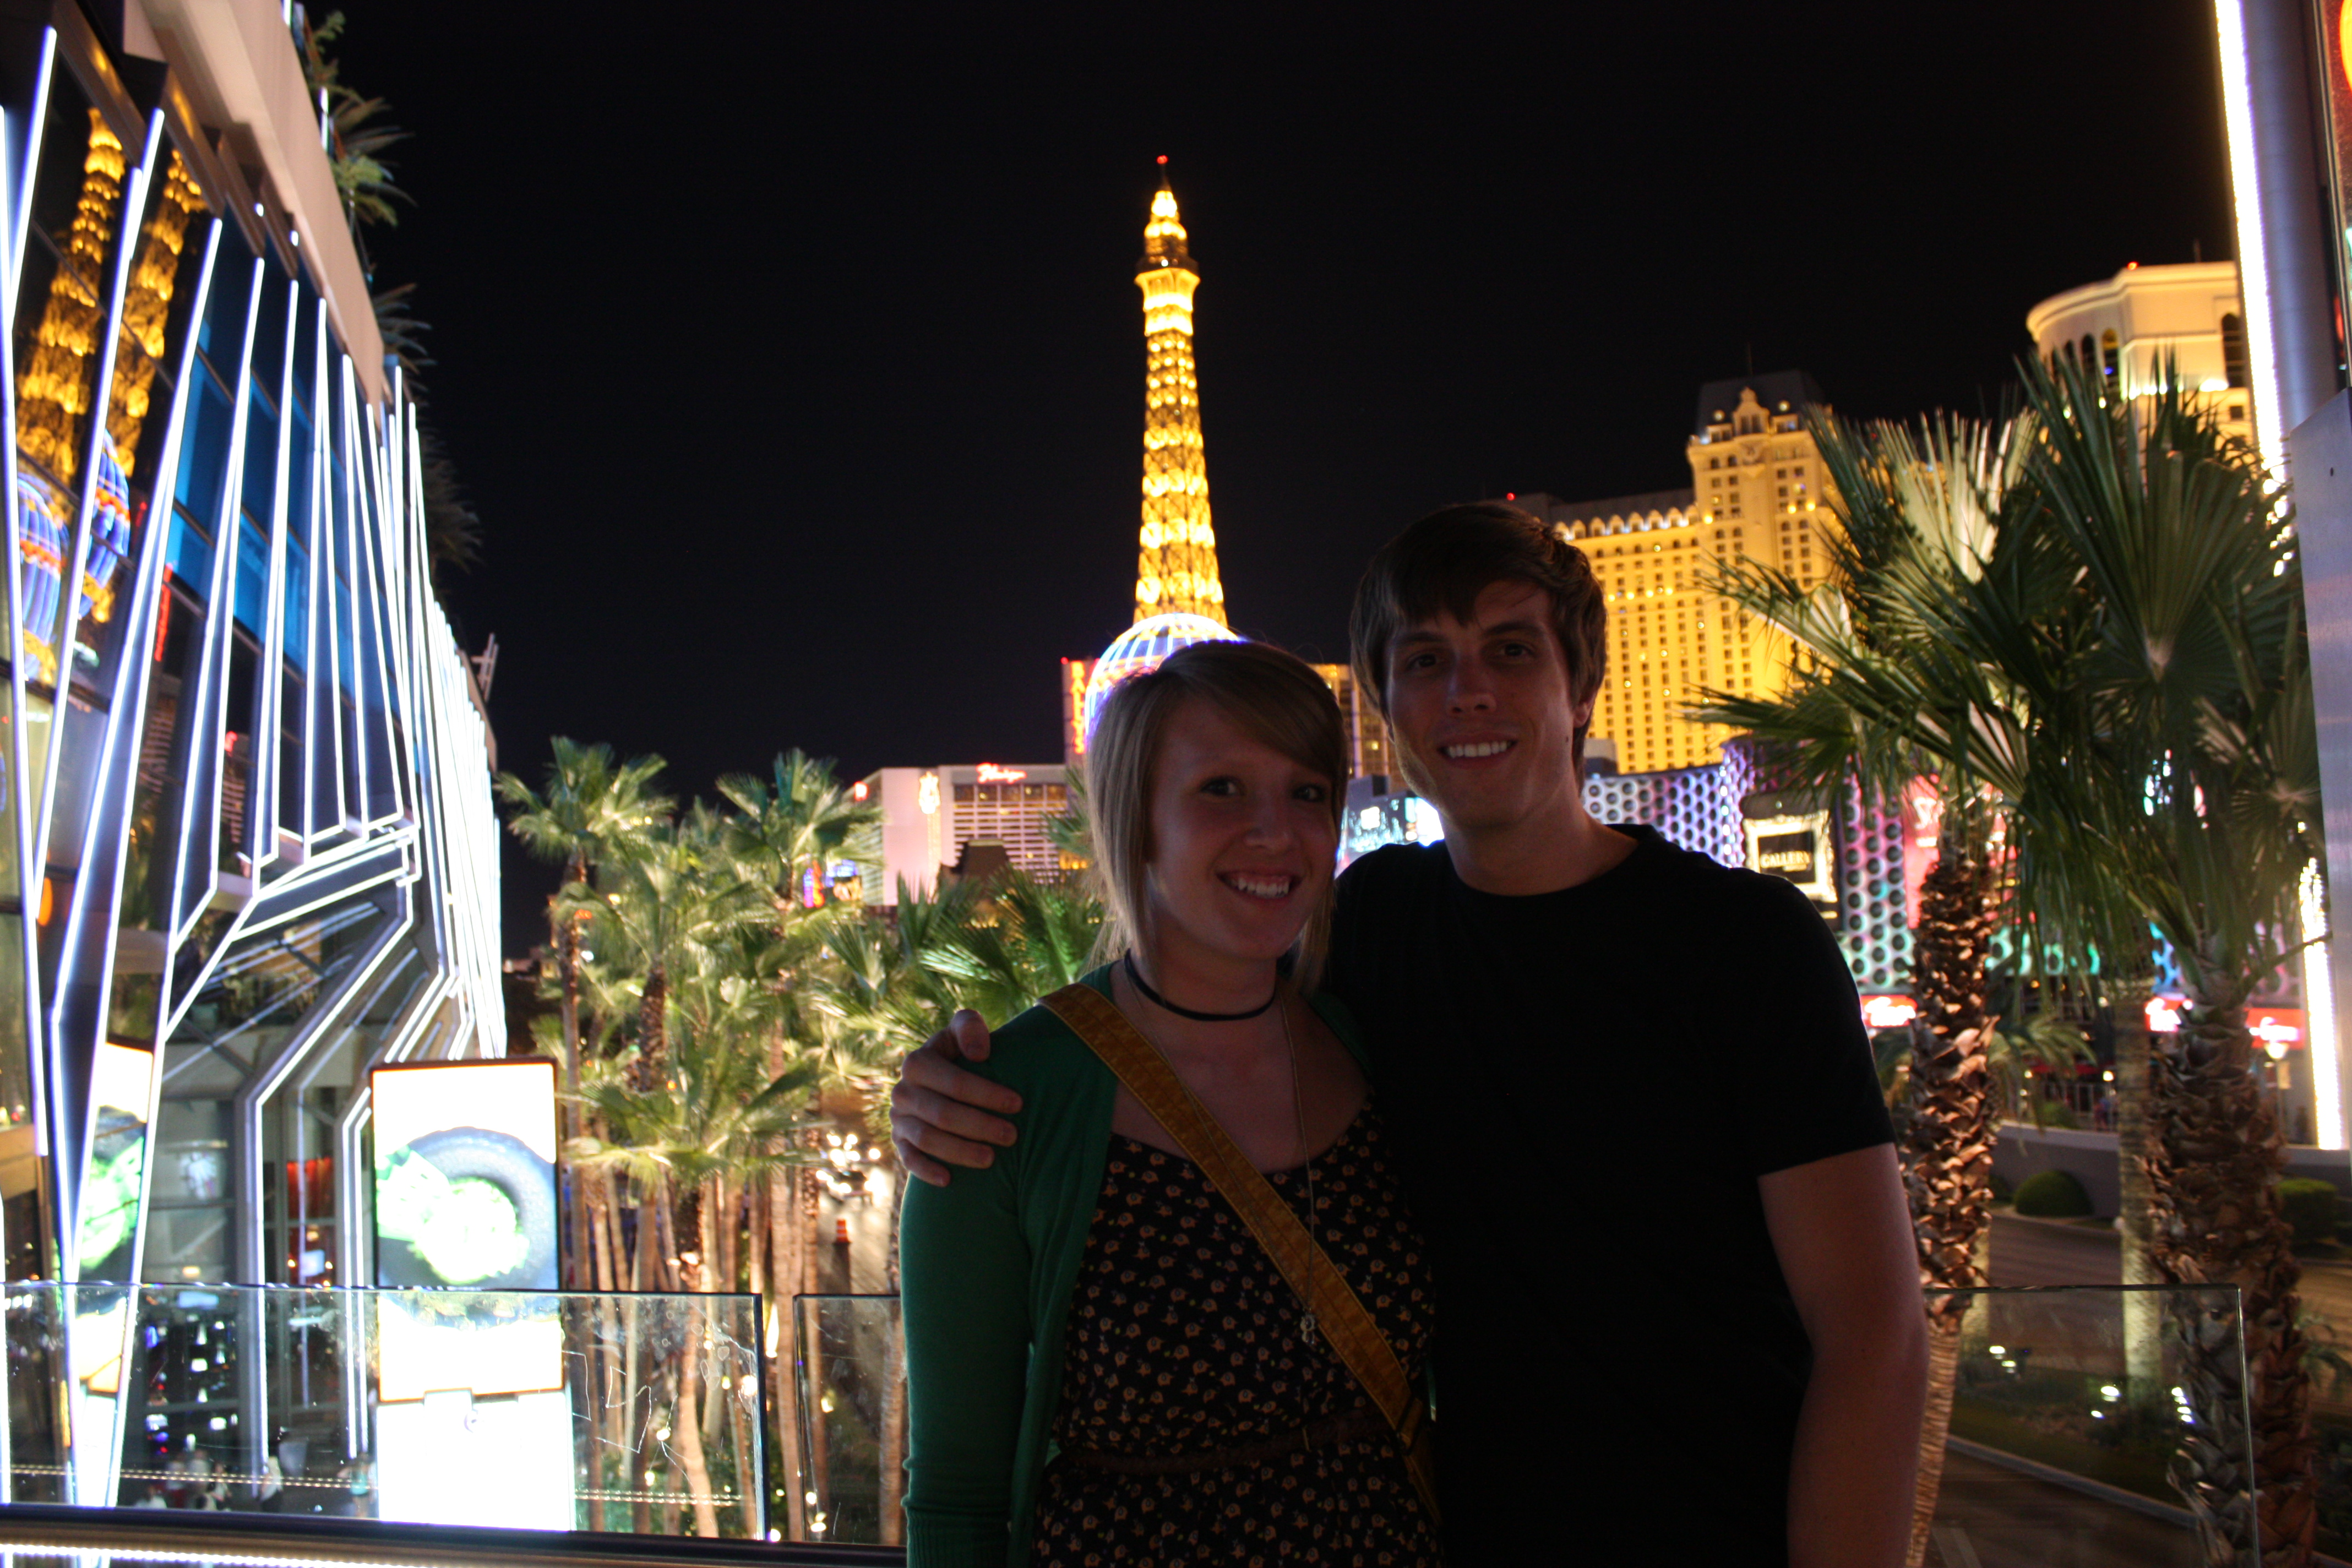 Cody Rapol and Keeshia McDonald in Vegas or somewhere close18